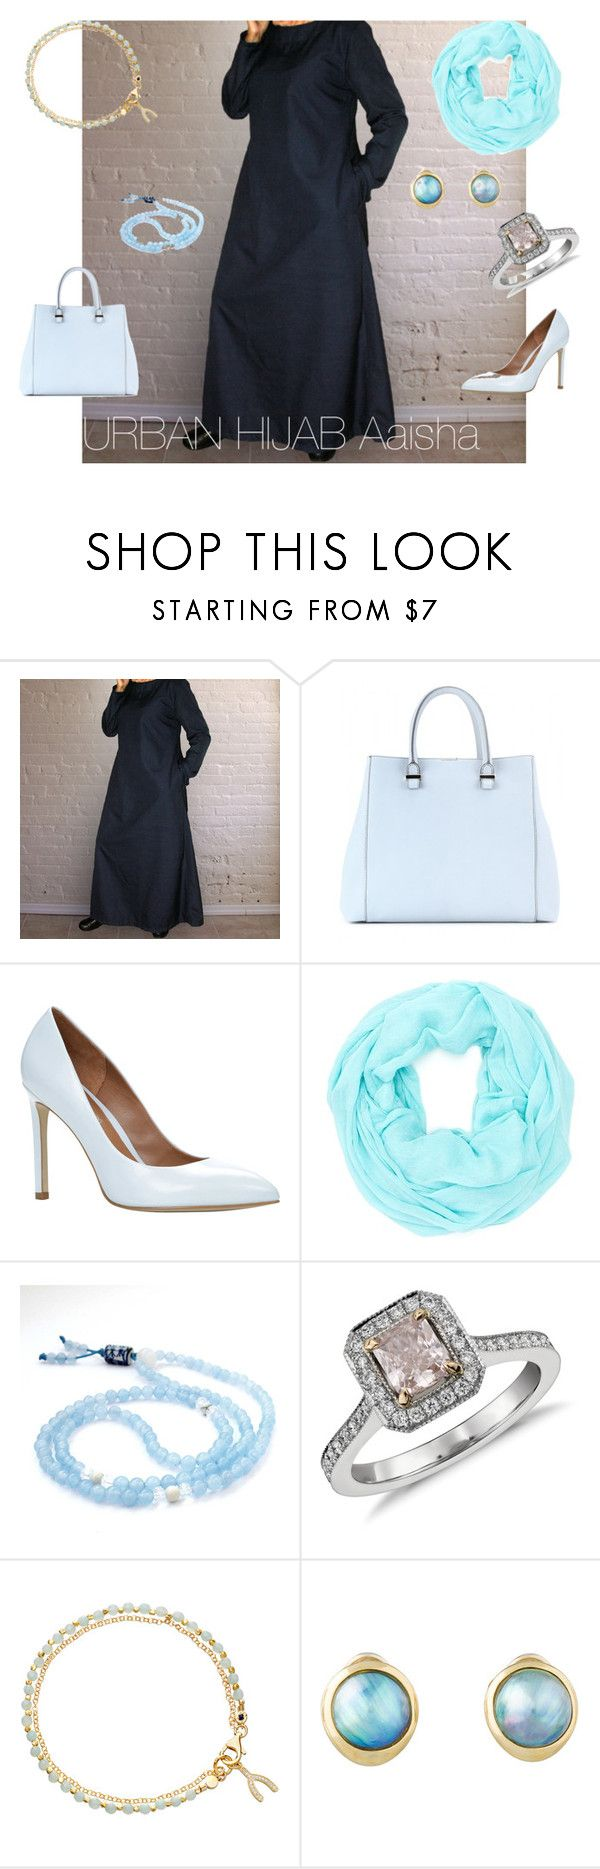 """""""Aaisha Traditional"""" by urban-hijab ❤ liked on Polyvore featuring Victoria Beckham, ALDO, Cara Accessories, Blue Nile, Astley Clarke and Tiffany & Co."""